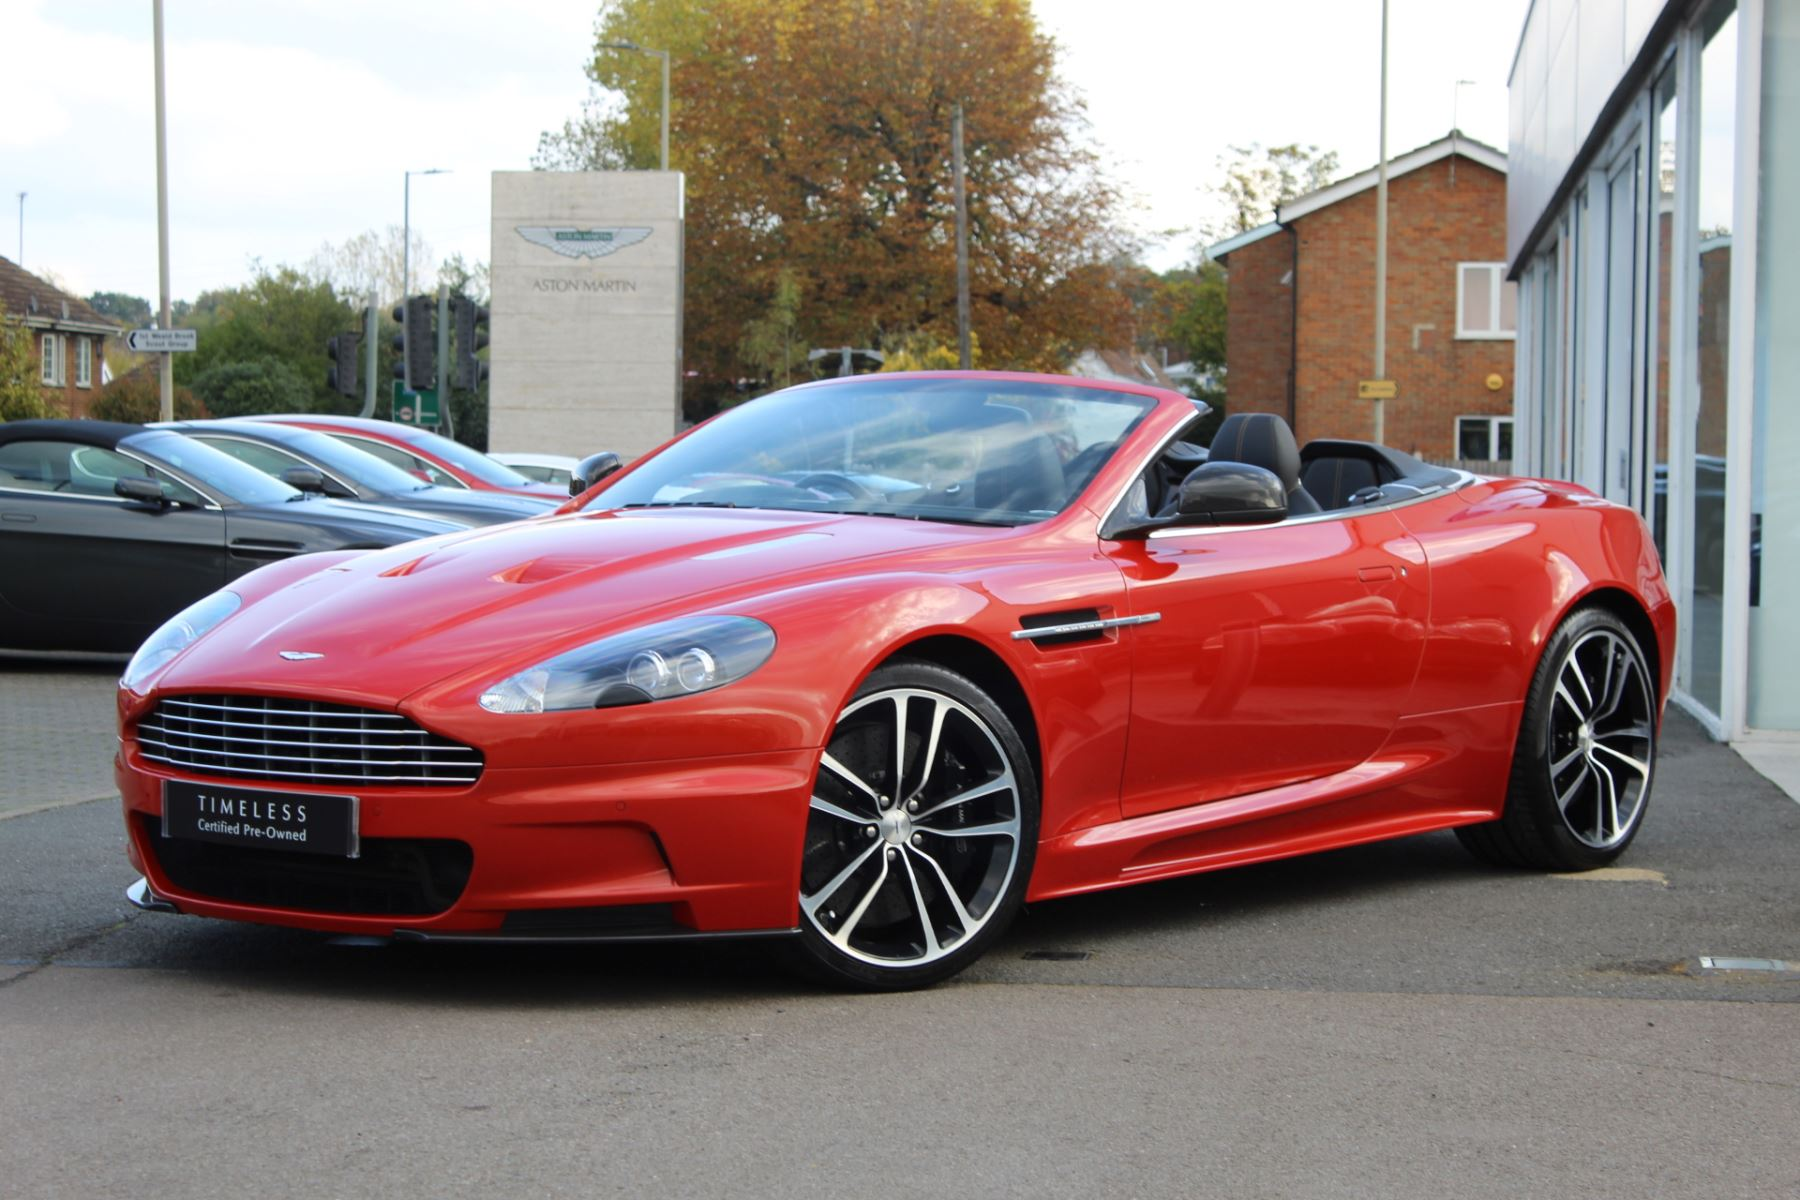 Aston Martin DBS V12 2dr Volante Touchtronic 5.9 Automatic Convertible (2012) image